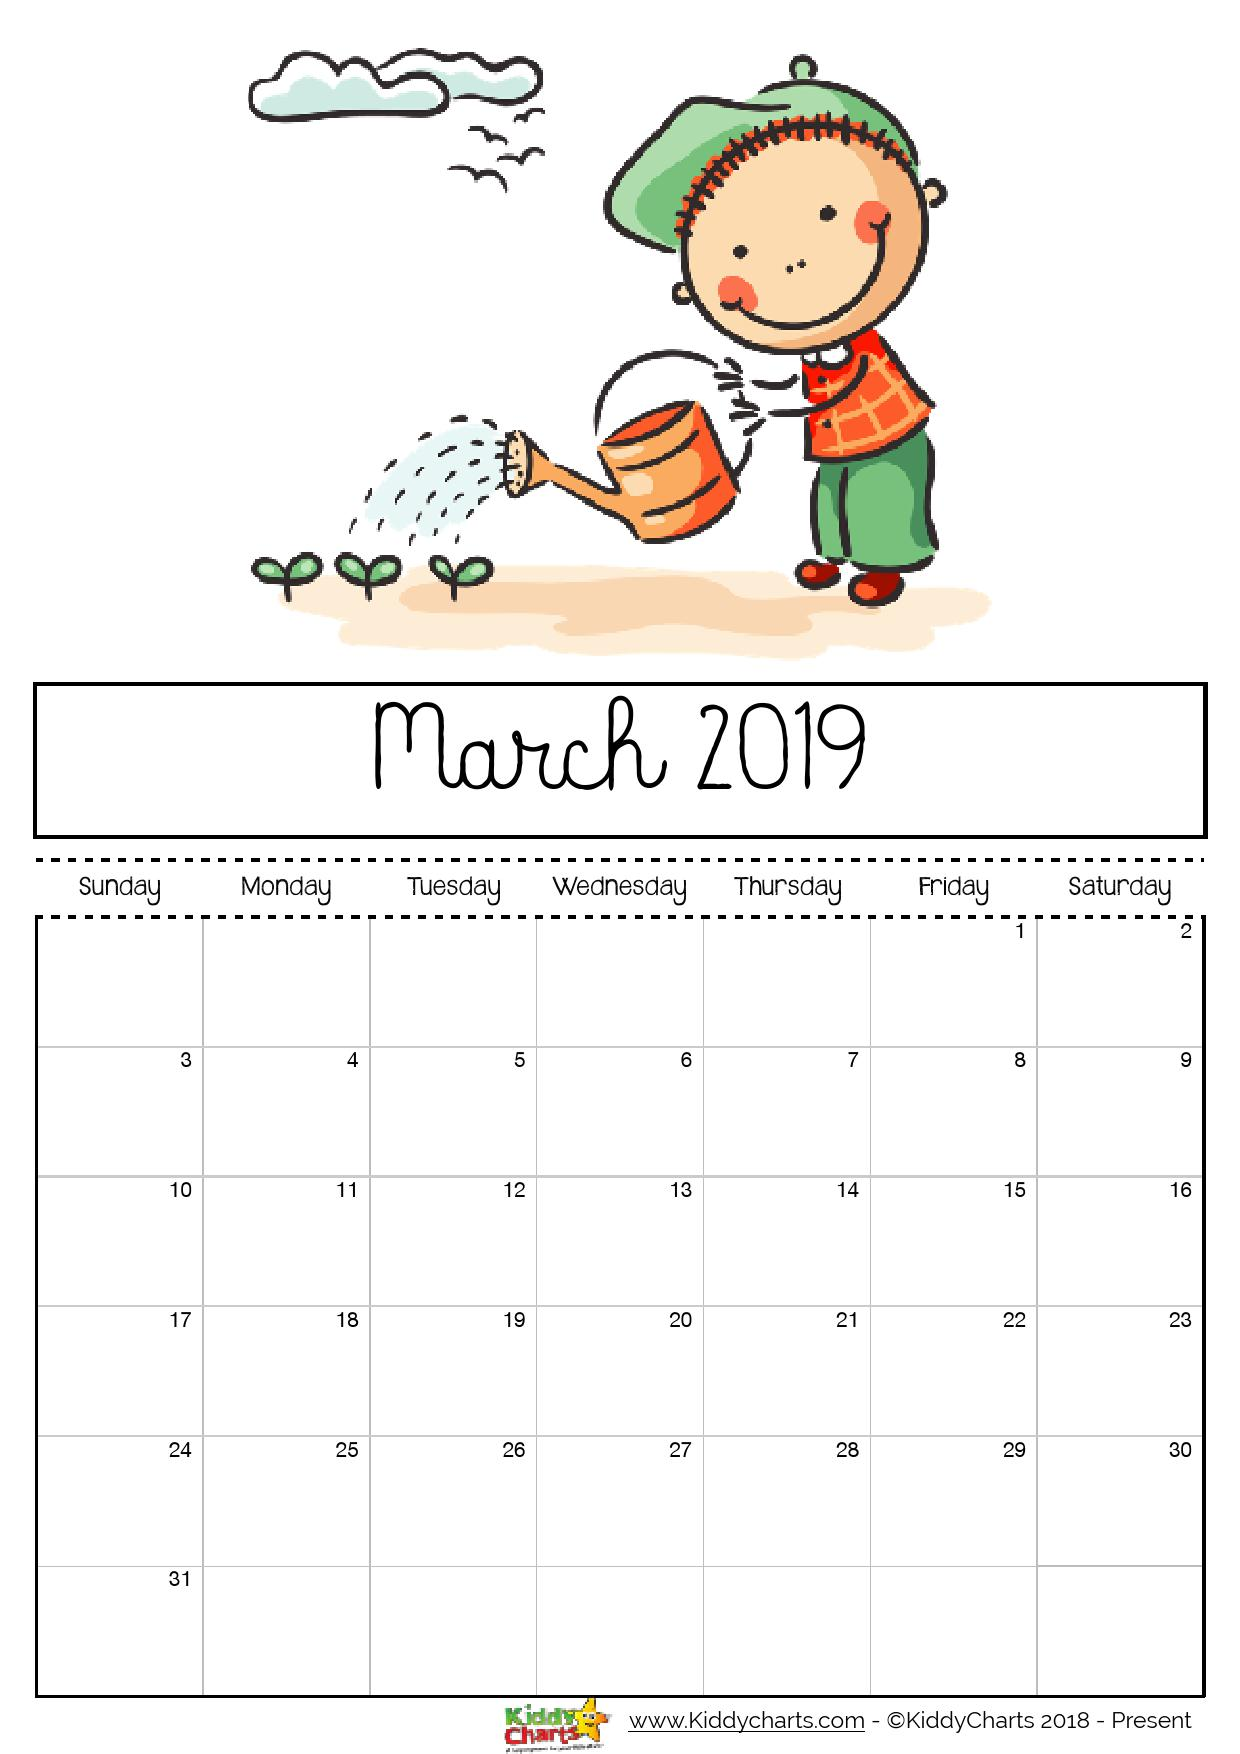 march printable 2019 calendar girl watering her garden with a watering can she can